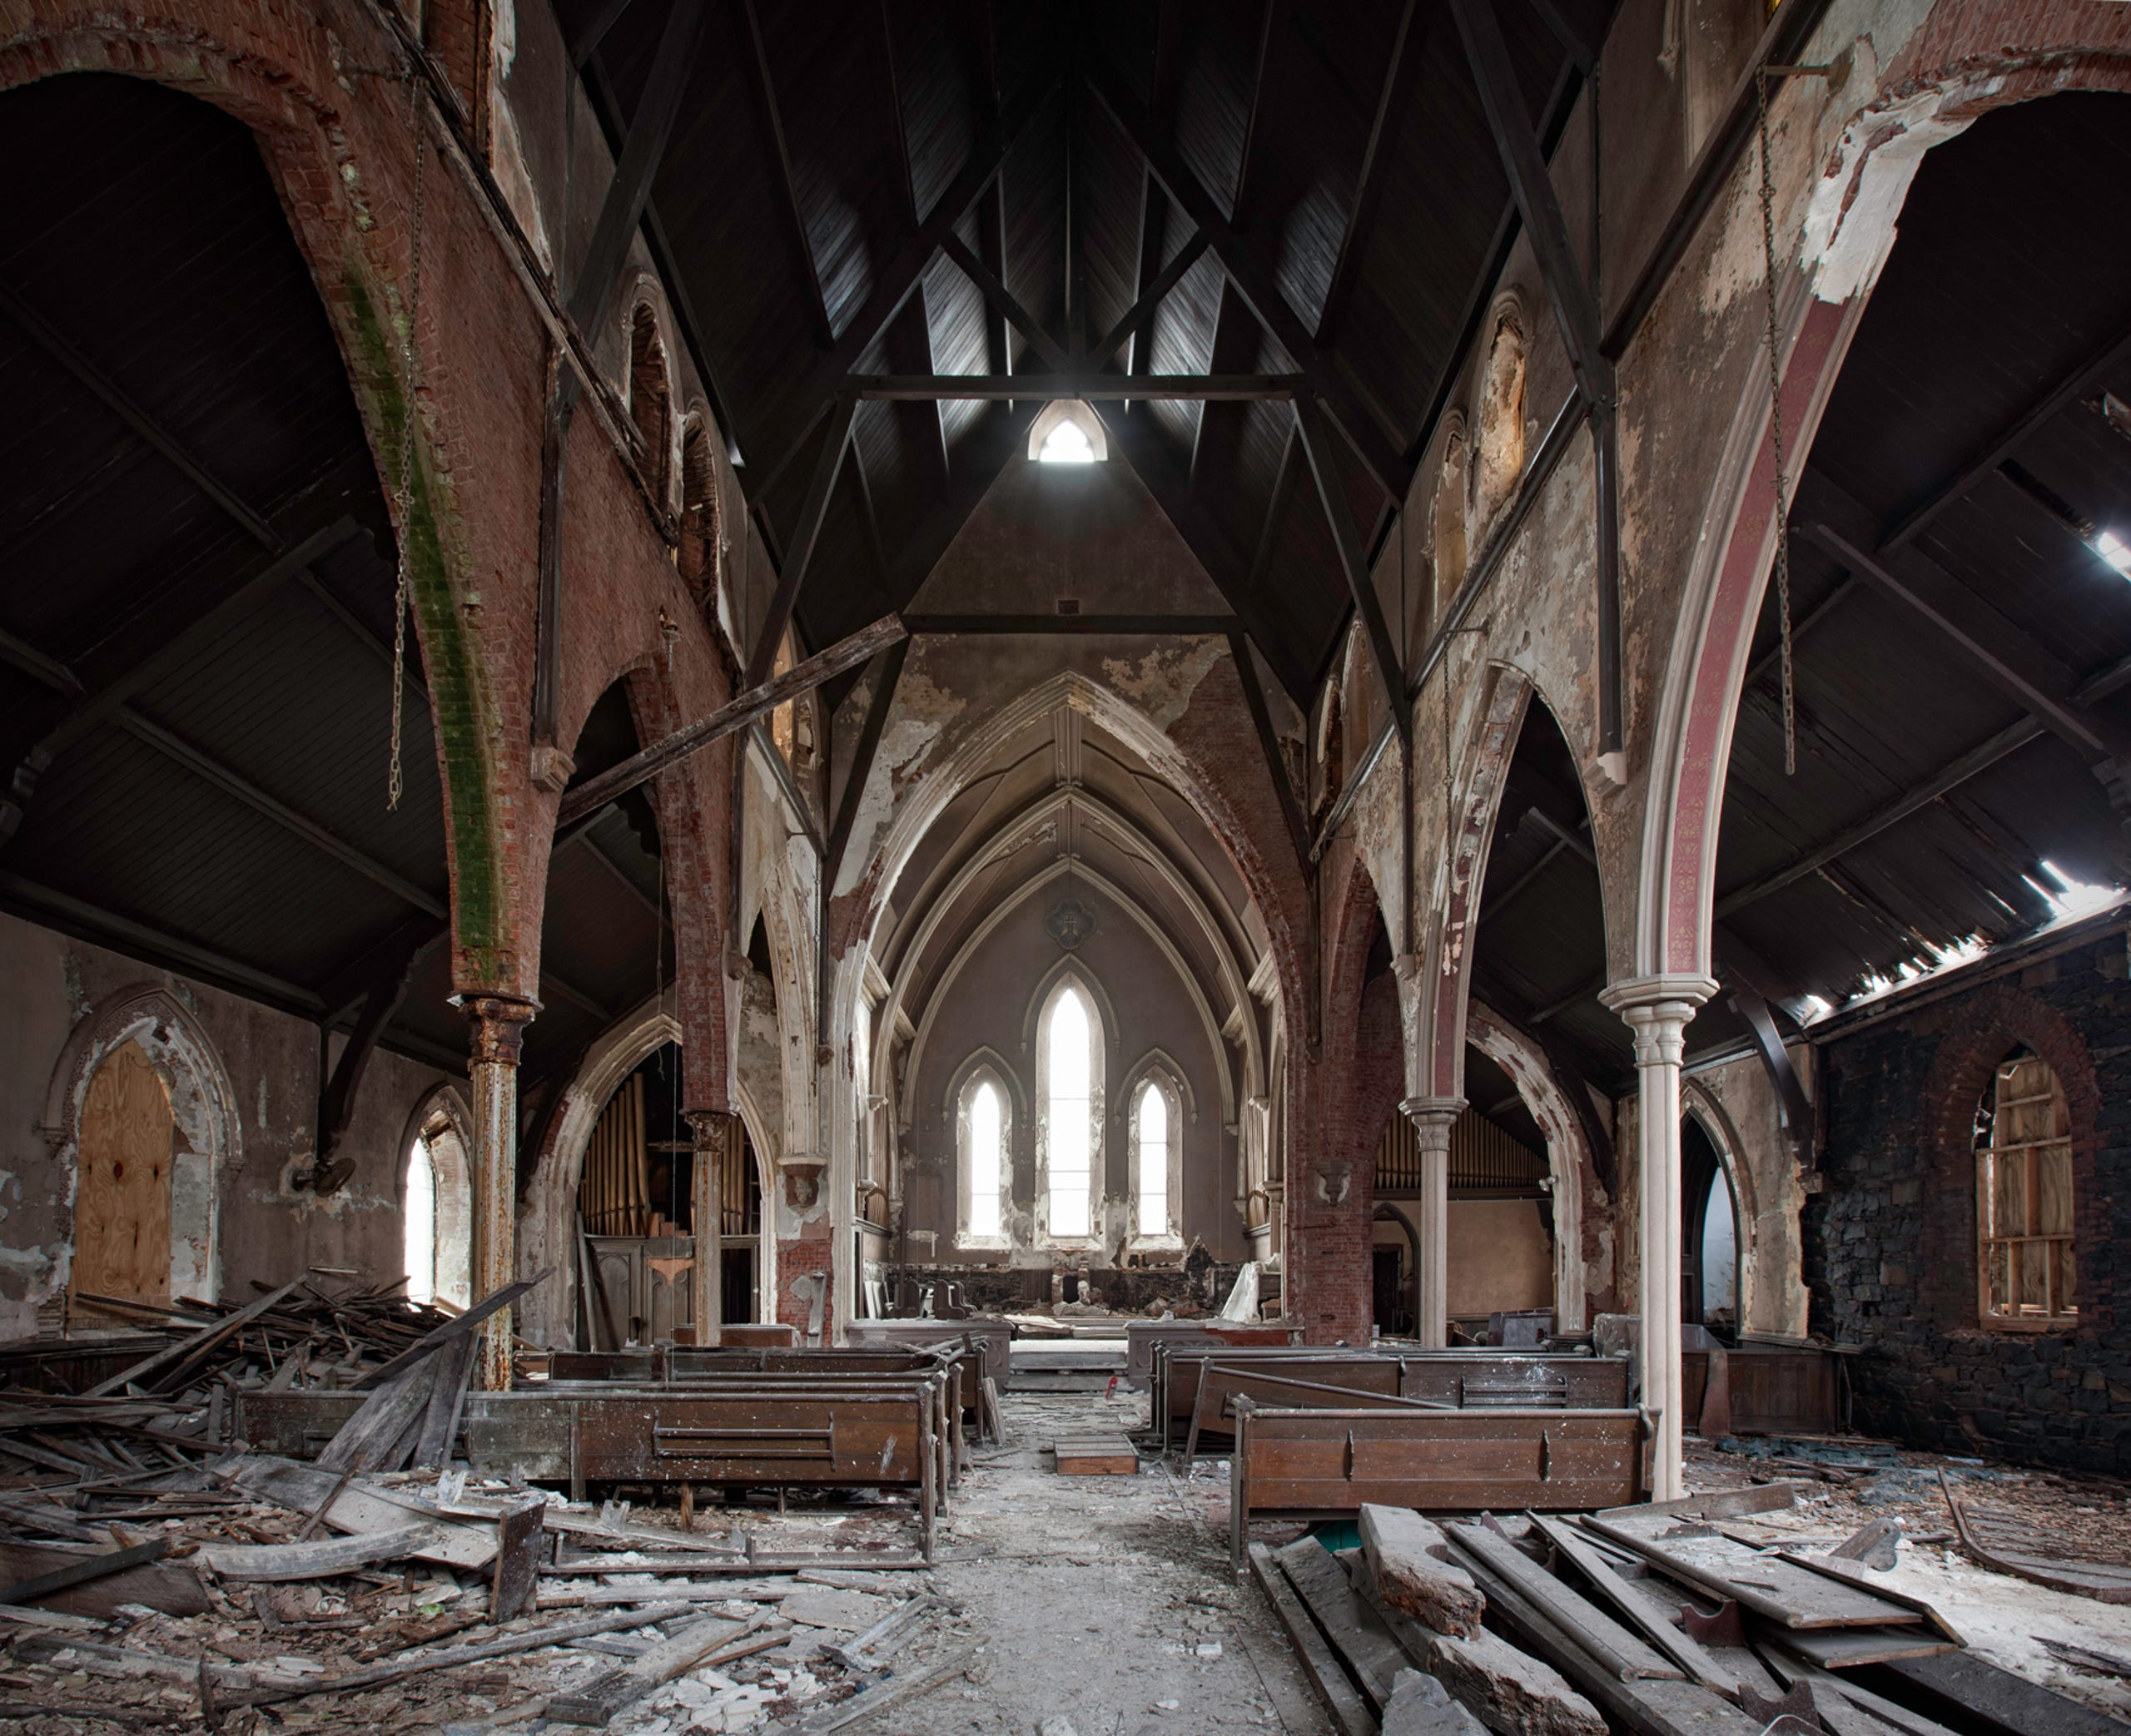 Abandoned America: Churches in states of decay